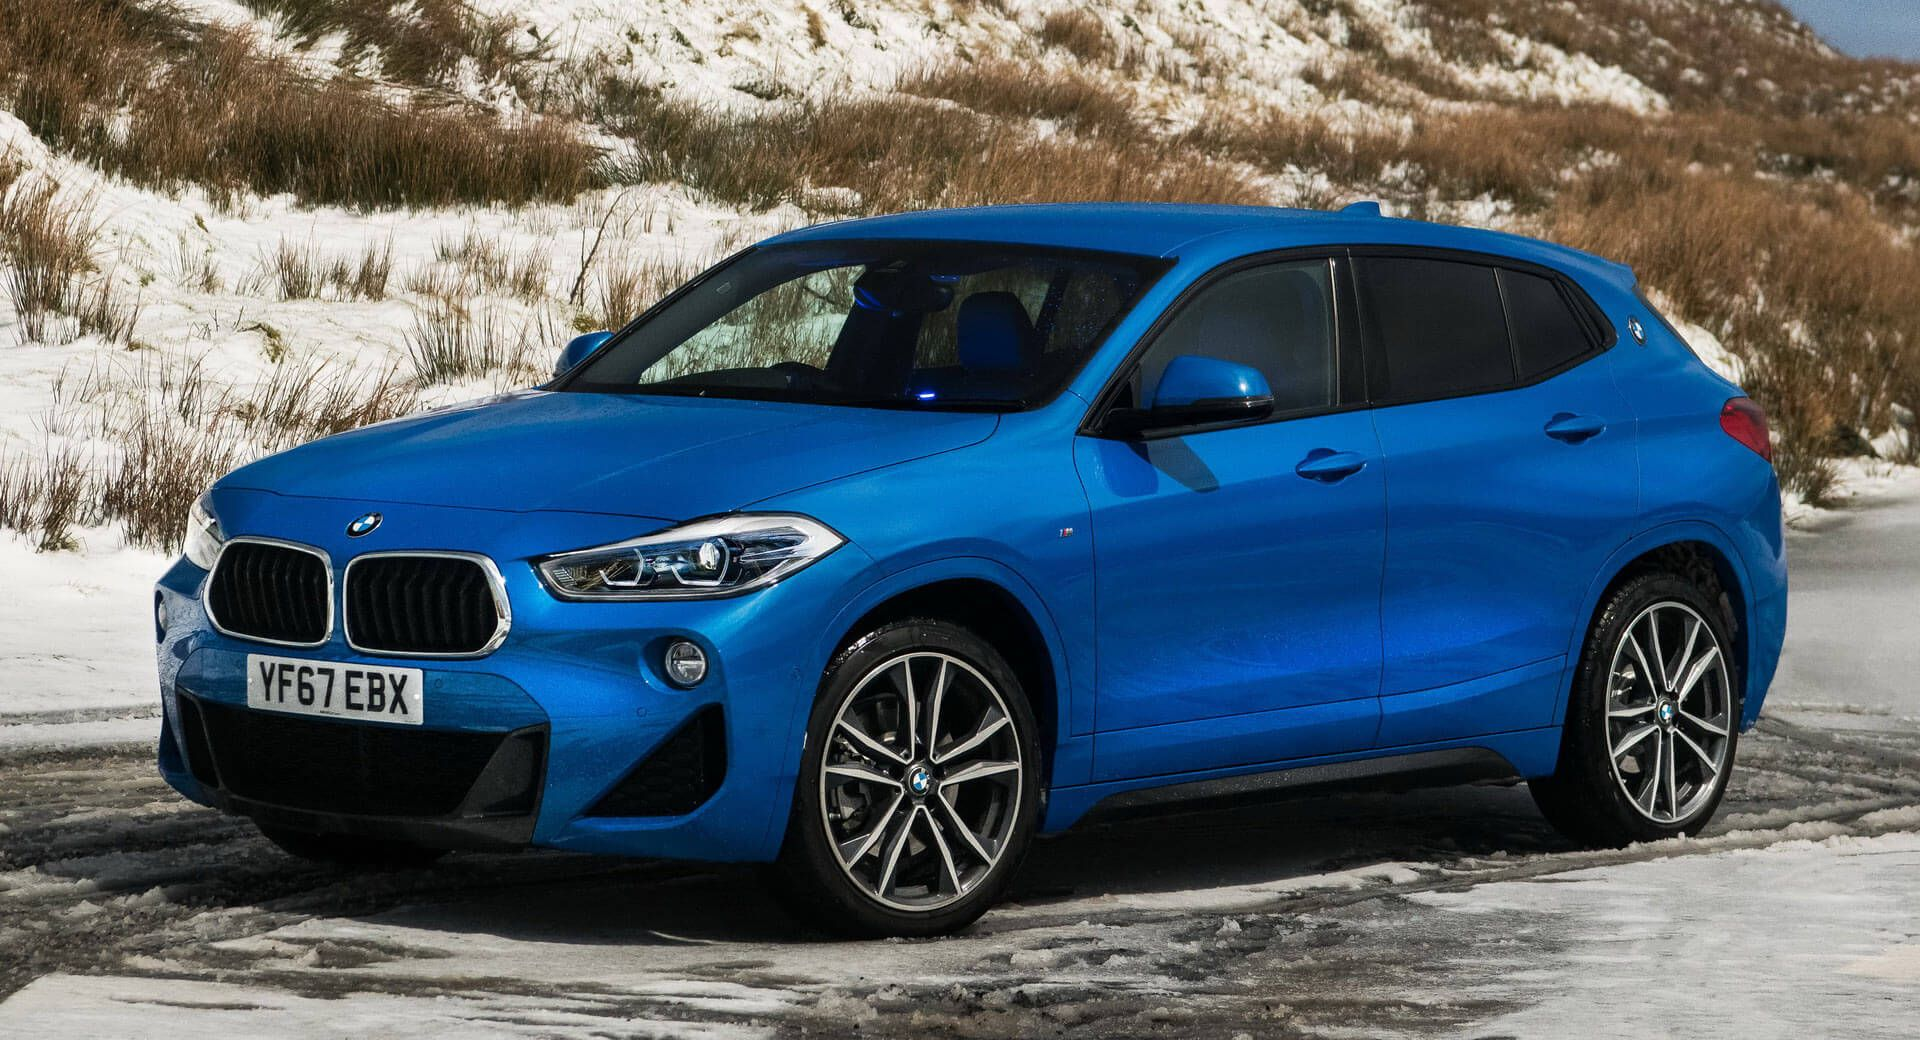 2018 bmw x2 priced from £33,980 in the uk, already available for